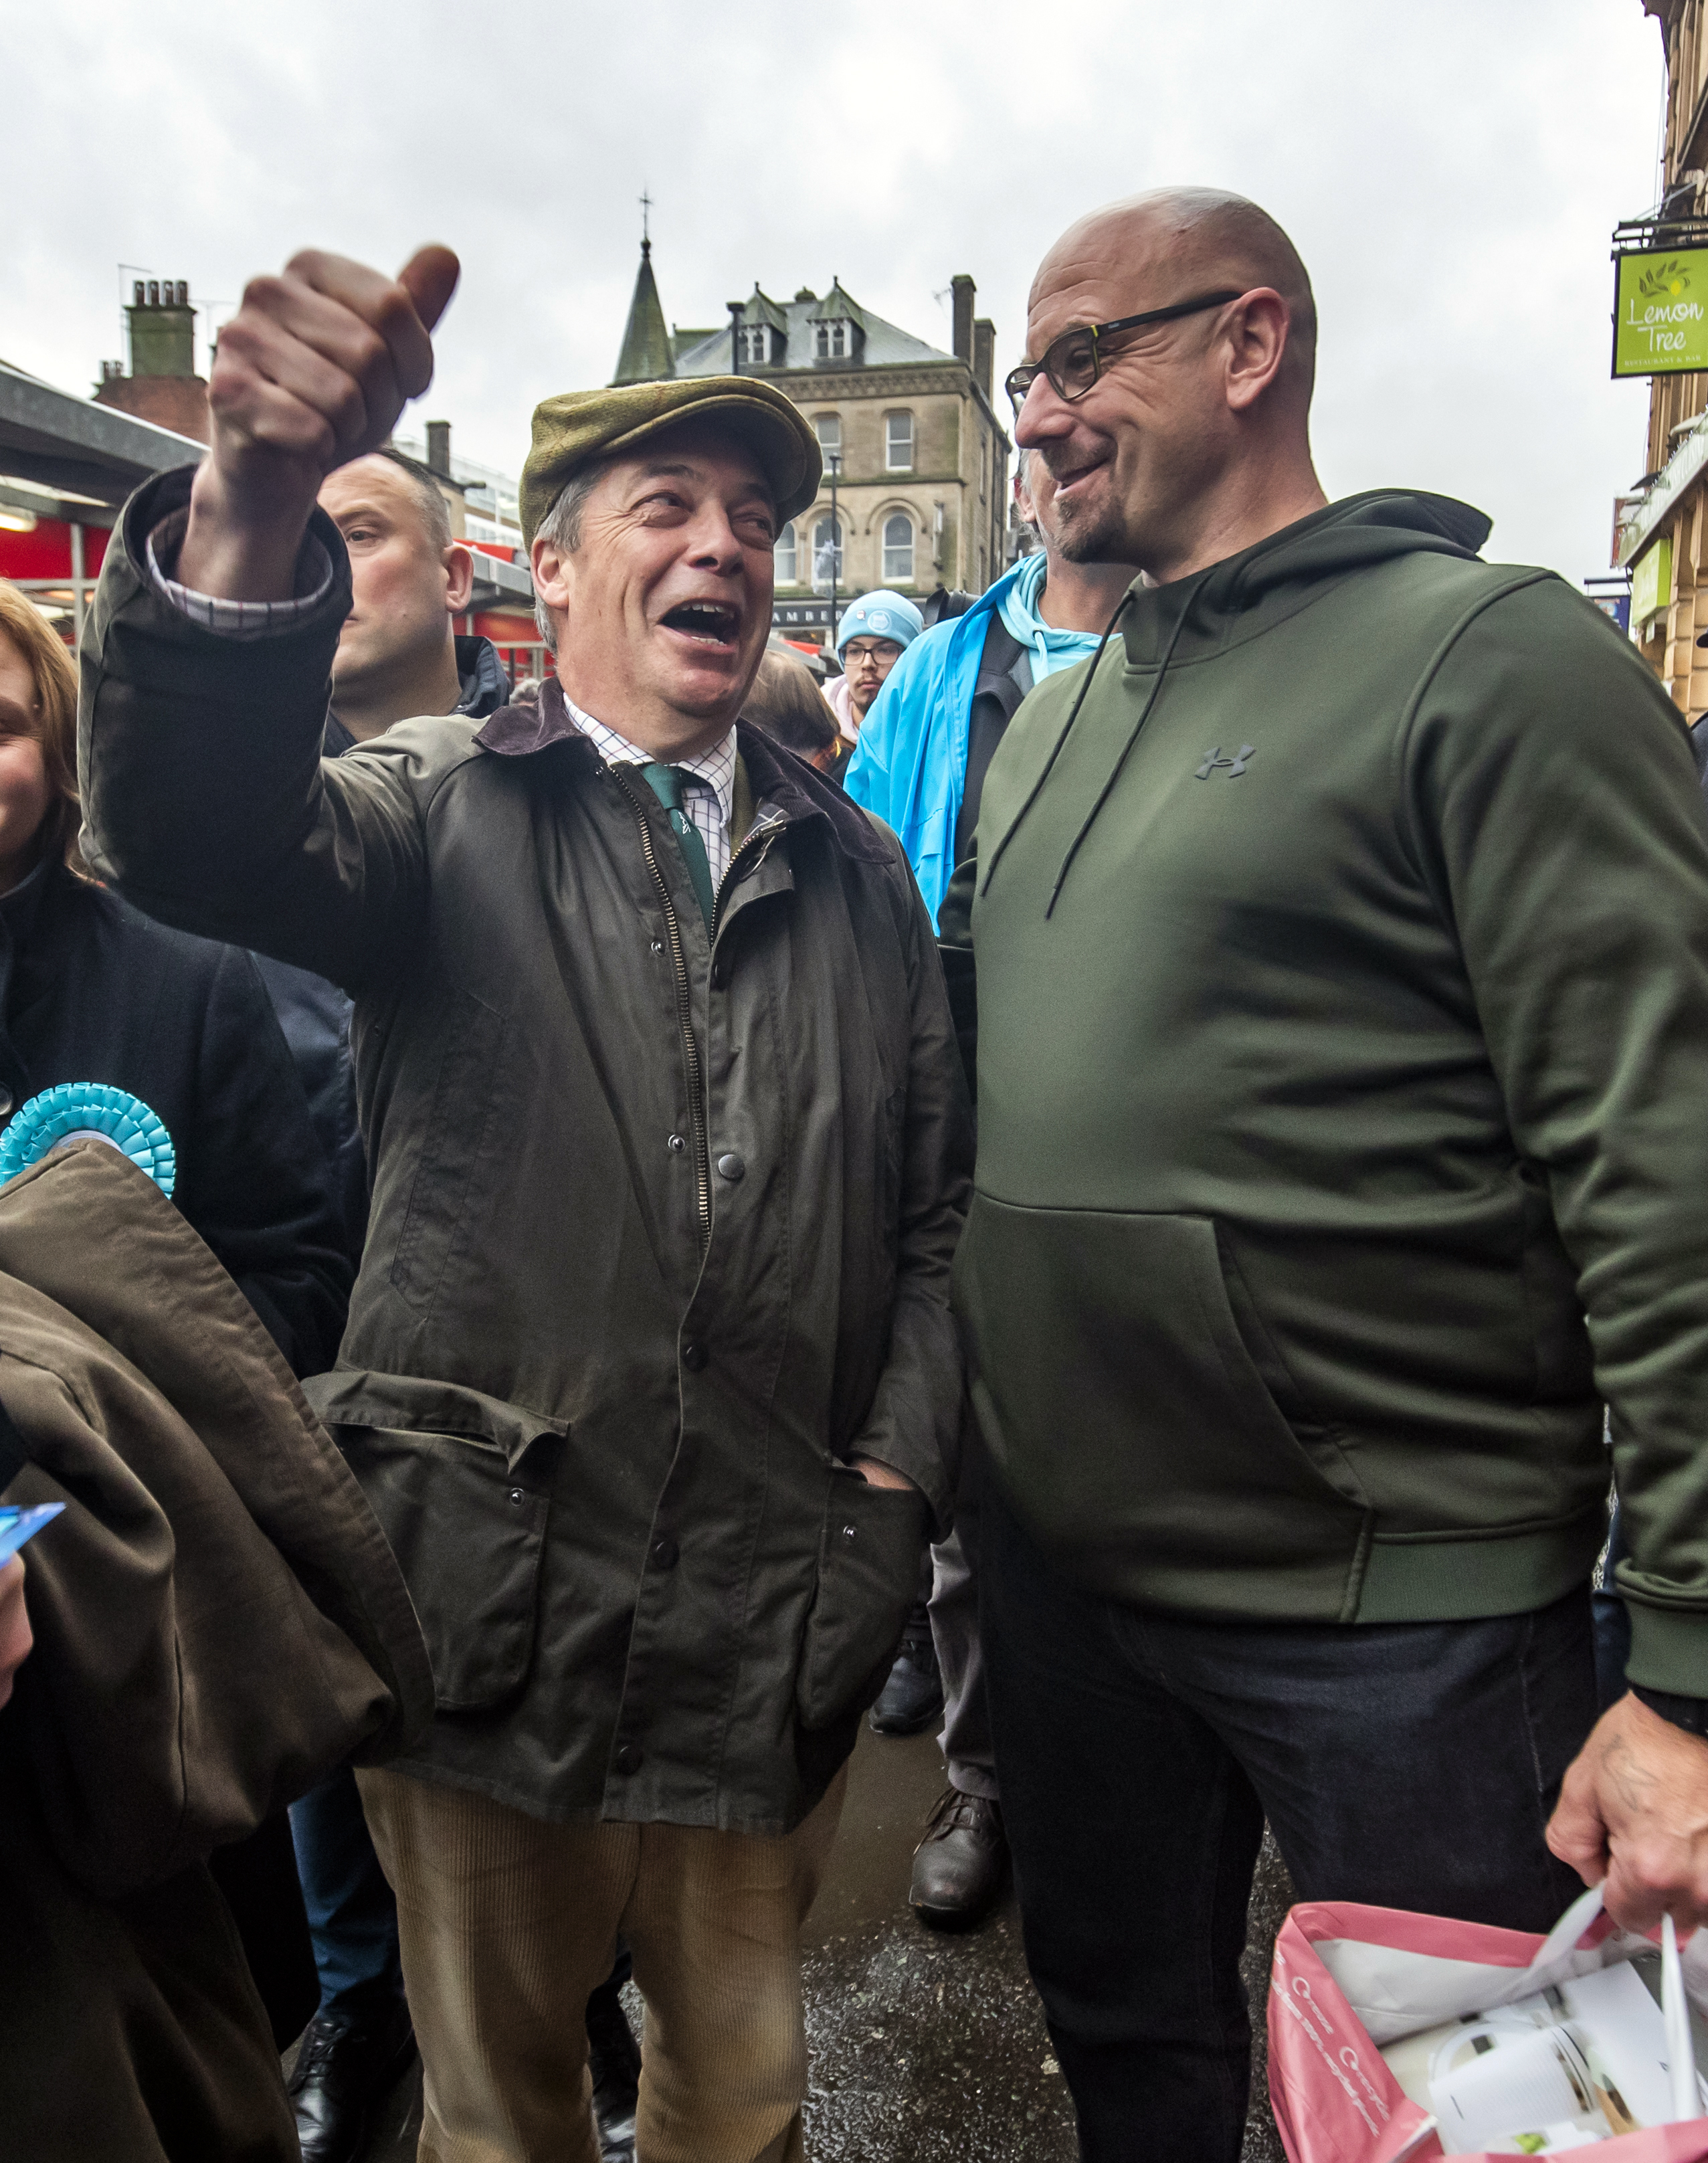 Brexit Party leader Nigel Farage meets locals in Barnsley market, while on the General Election campaign trail.